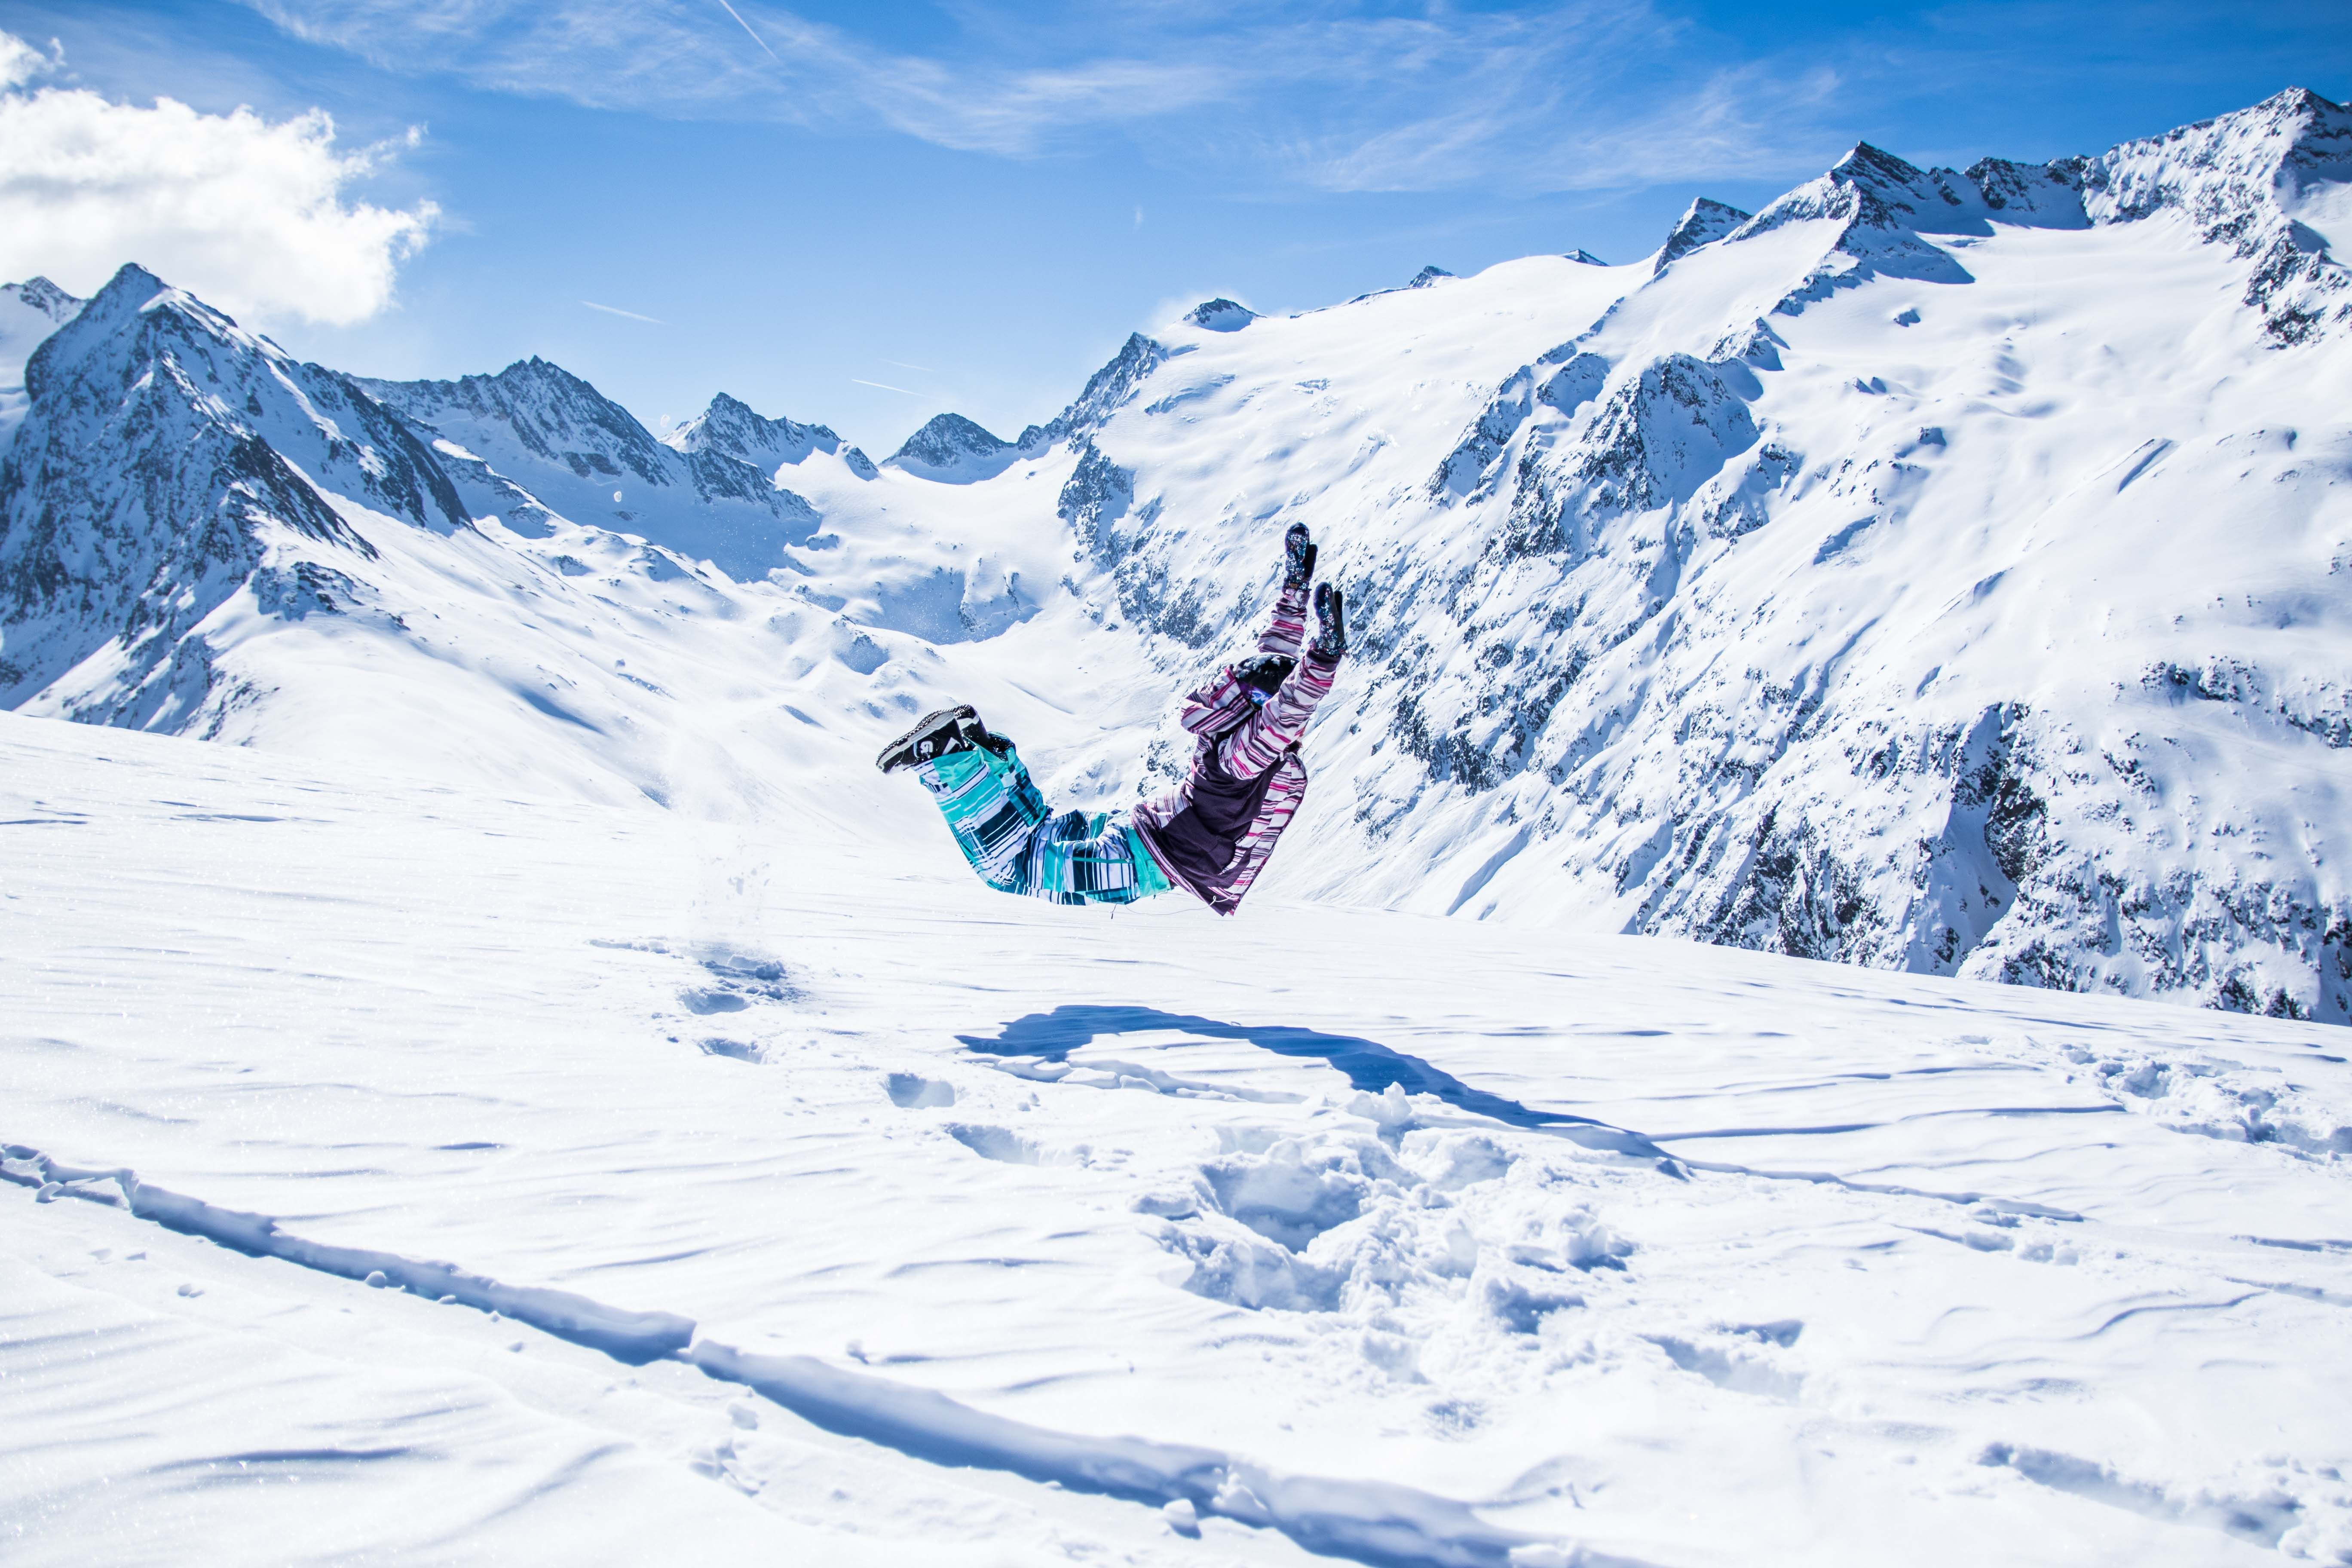 soelden snowboarding photography